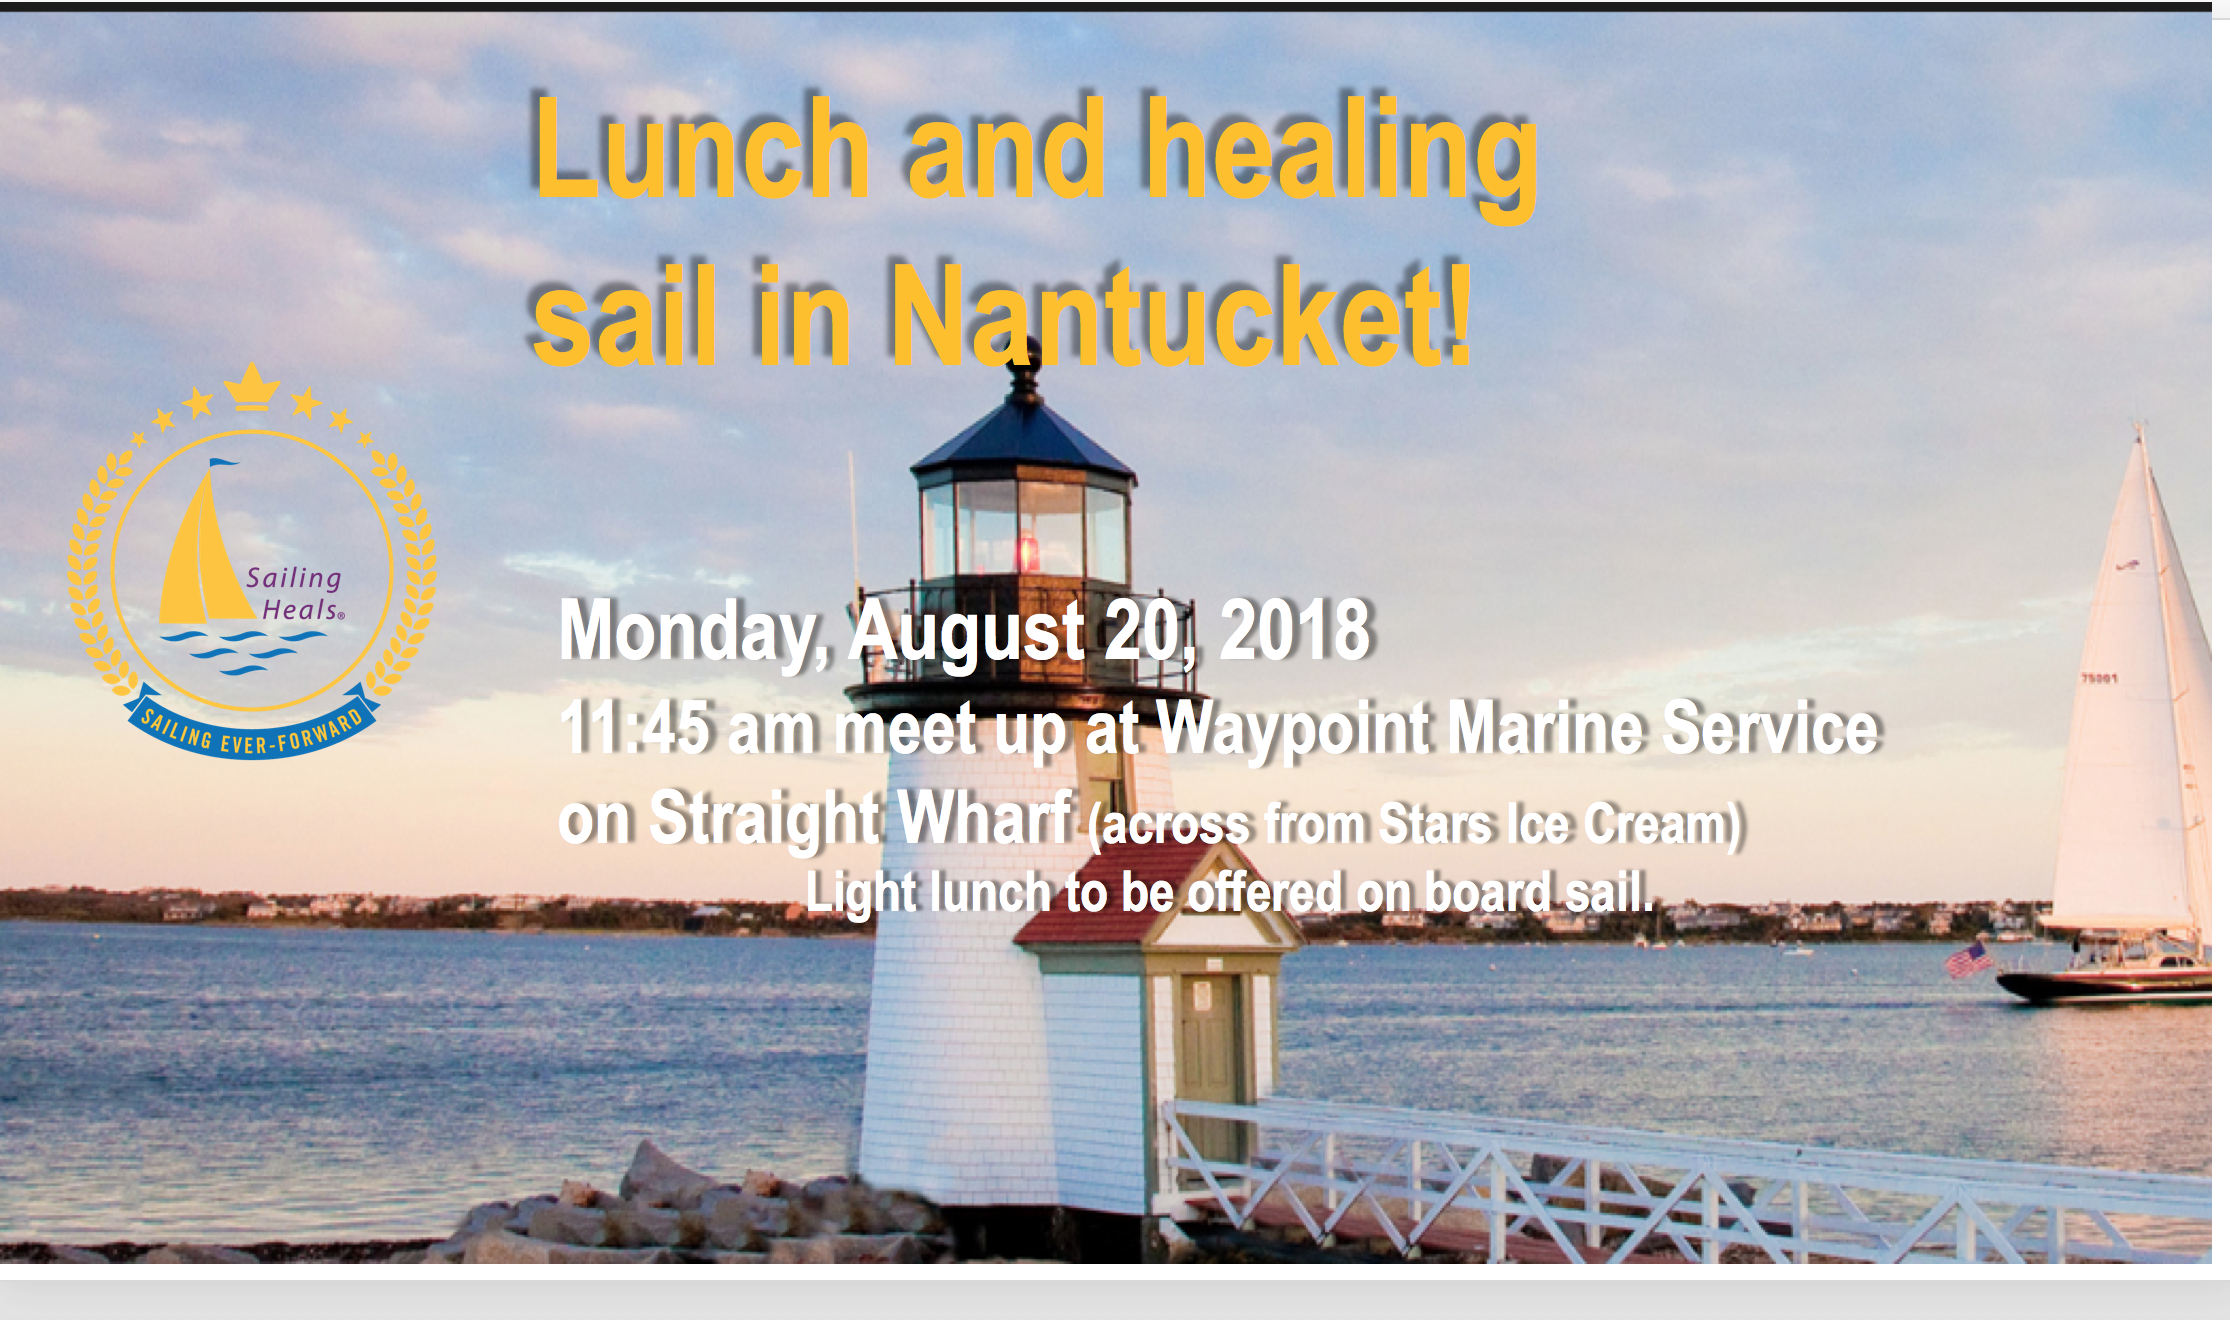 8/20/18 Nantucket lunch and healing sail